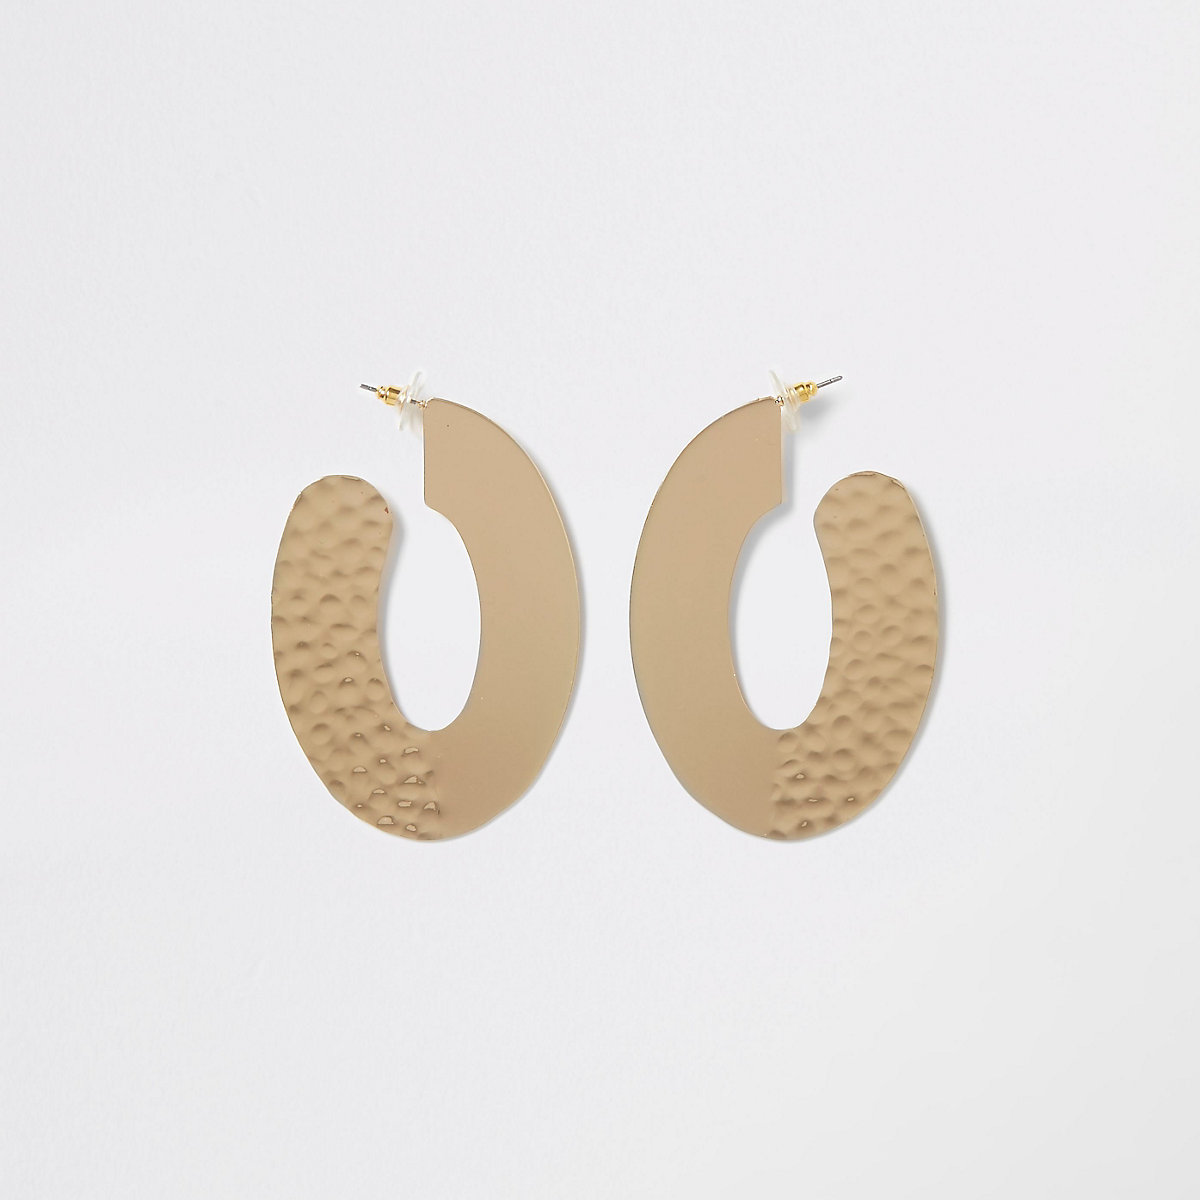 Gold color hammered large oval hoop earrings